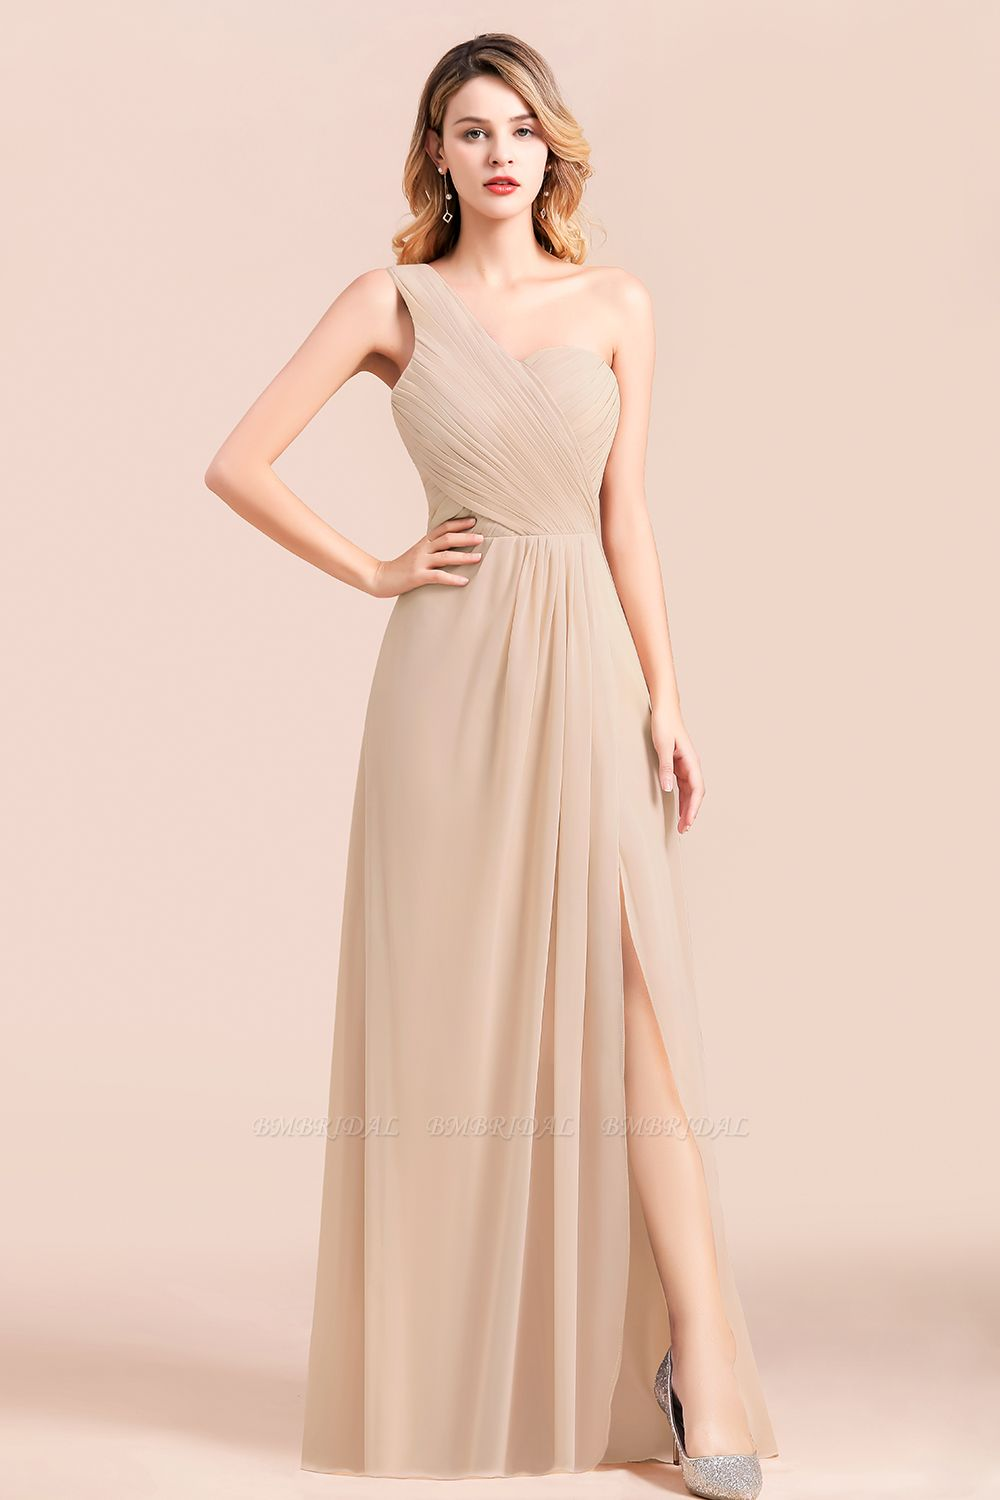 Chic One Shoulder Ruffle Champagne Chiffon Bridesmaid Dress